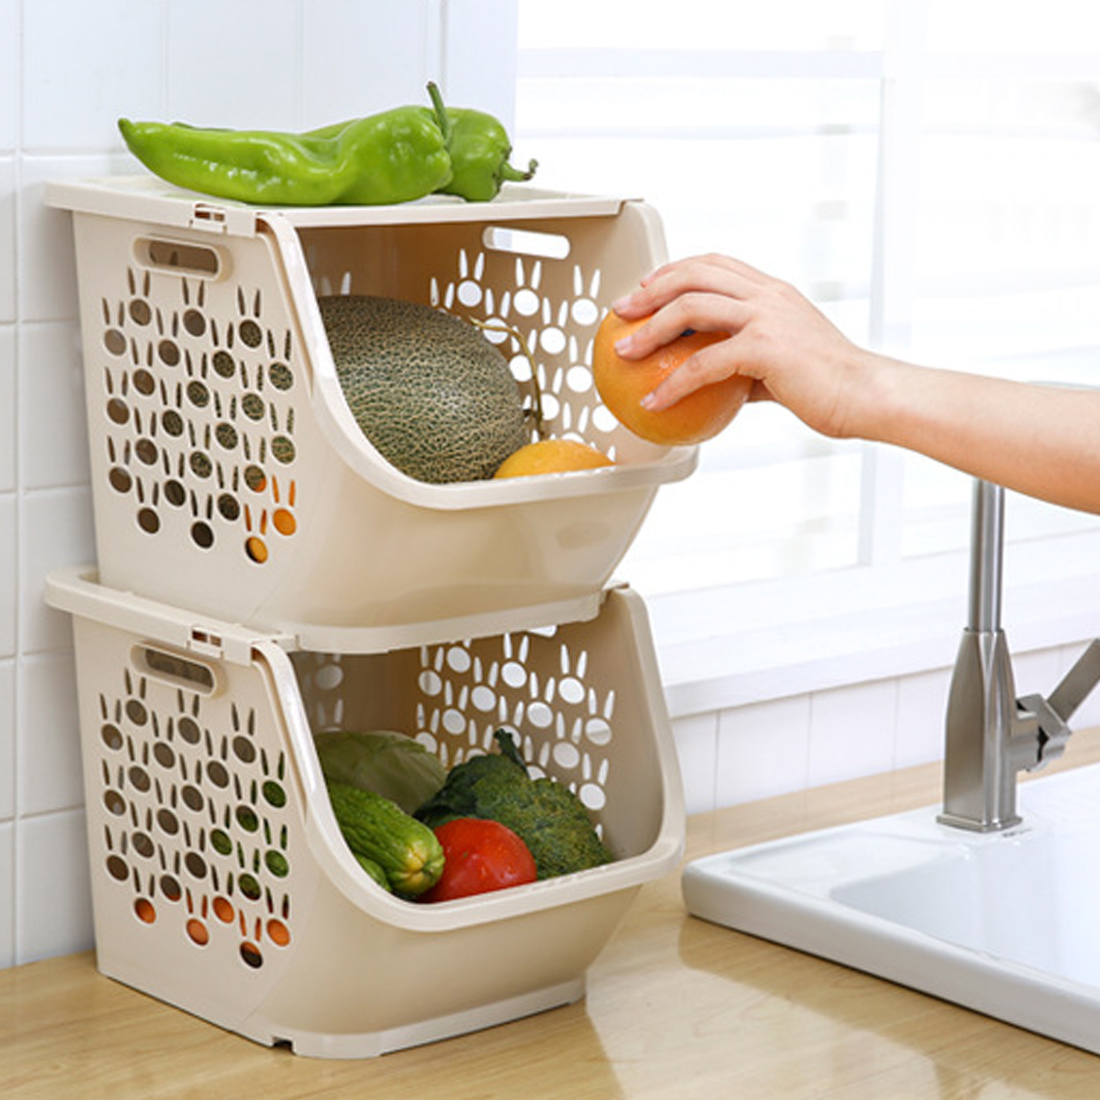 Hipsteen Kitchen Storage Basket Plastic Multi-functional Hollow Vegetables Fruit Racks With Cover Storage Basket For Organizers SH190703